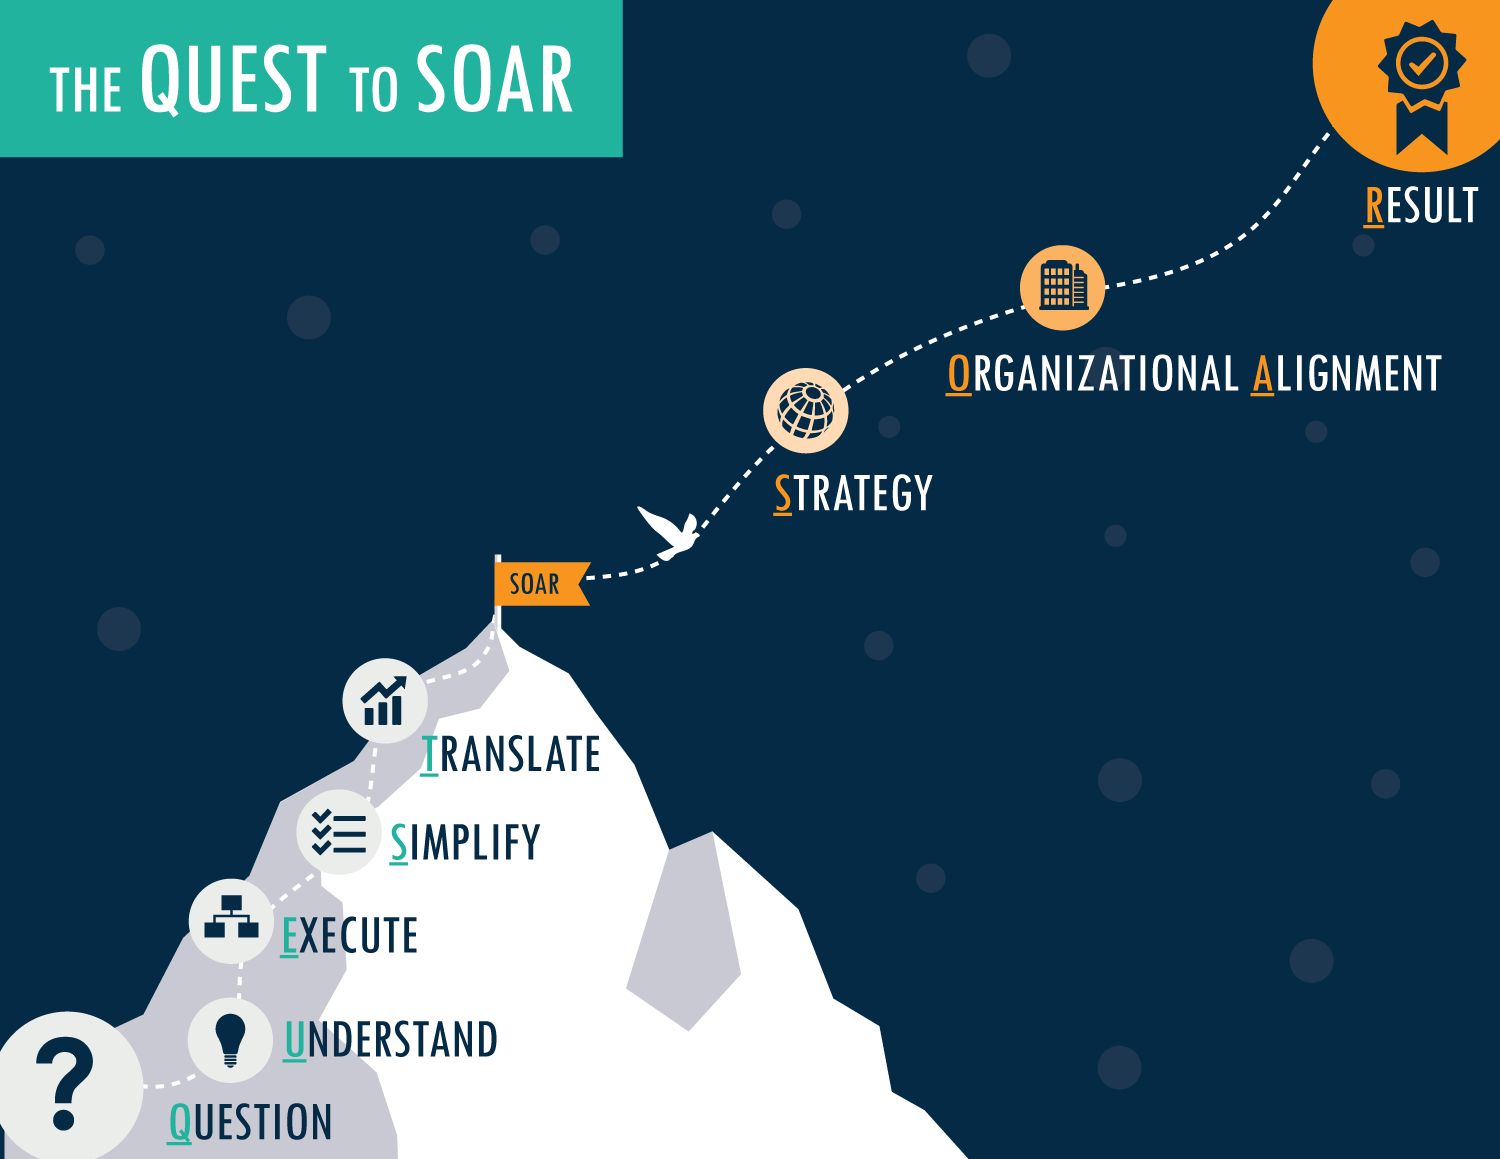 Quest to Soar Market Research